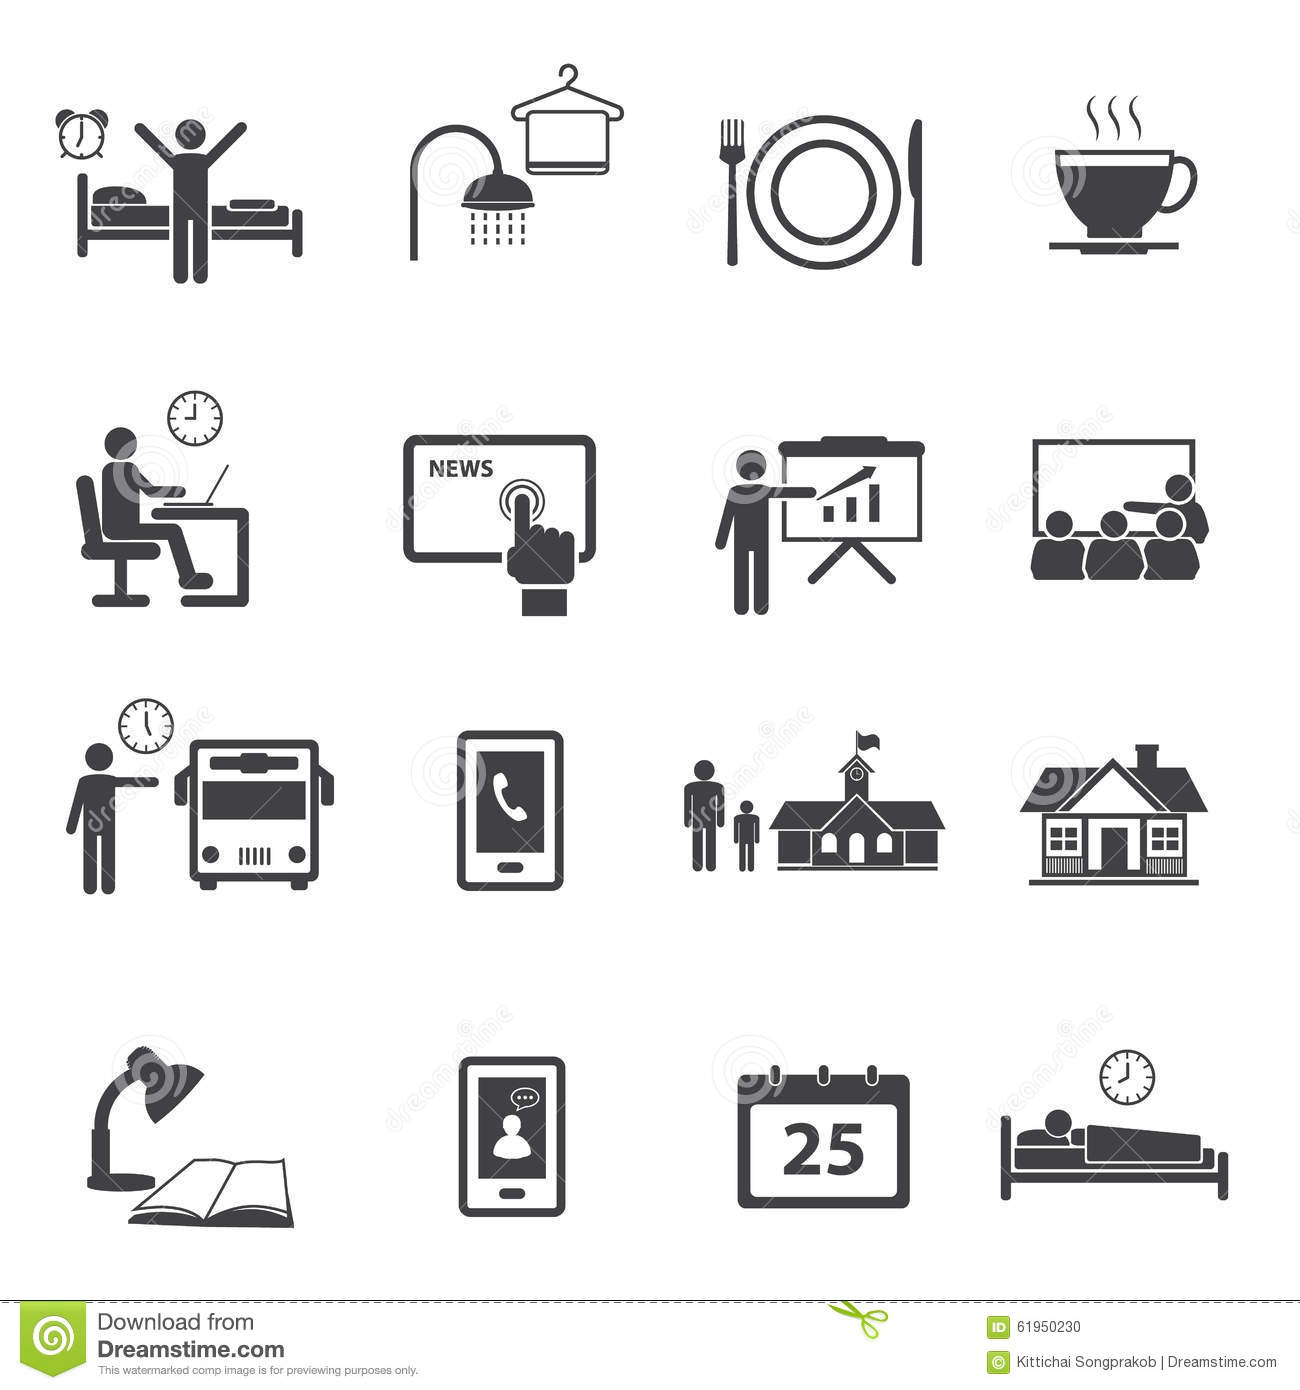 Activity Daily Routine Icons Set Stock Photo - Image: 61950230